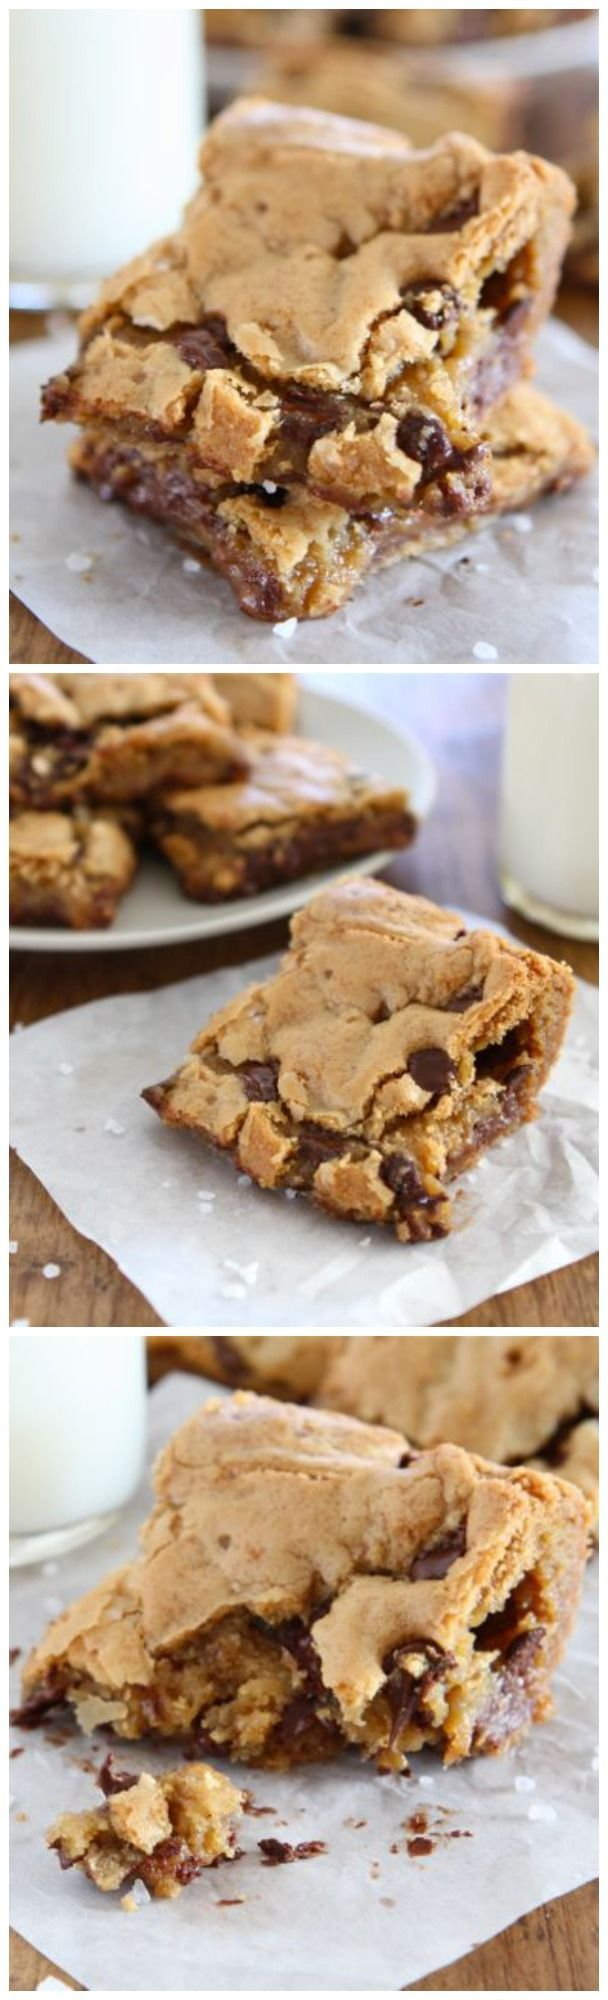 Chocolate Chip Salted Caramel Cookie Bars Recipe on twopeasandtheirpod.com Everyone LOVES these bars! The perfect dessert!